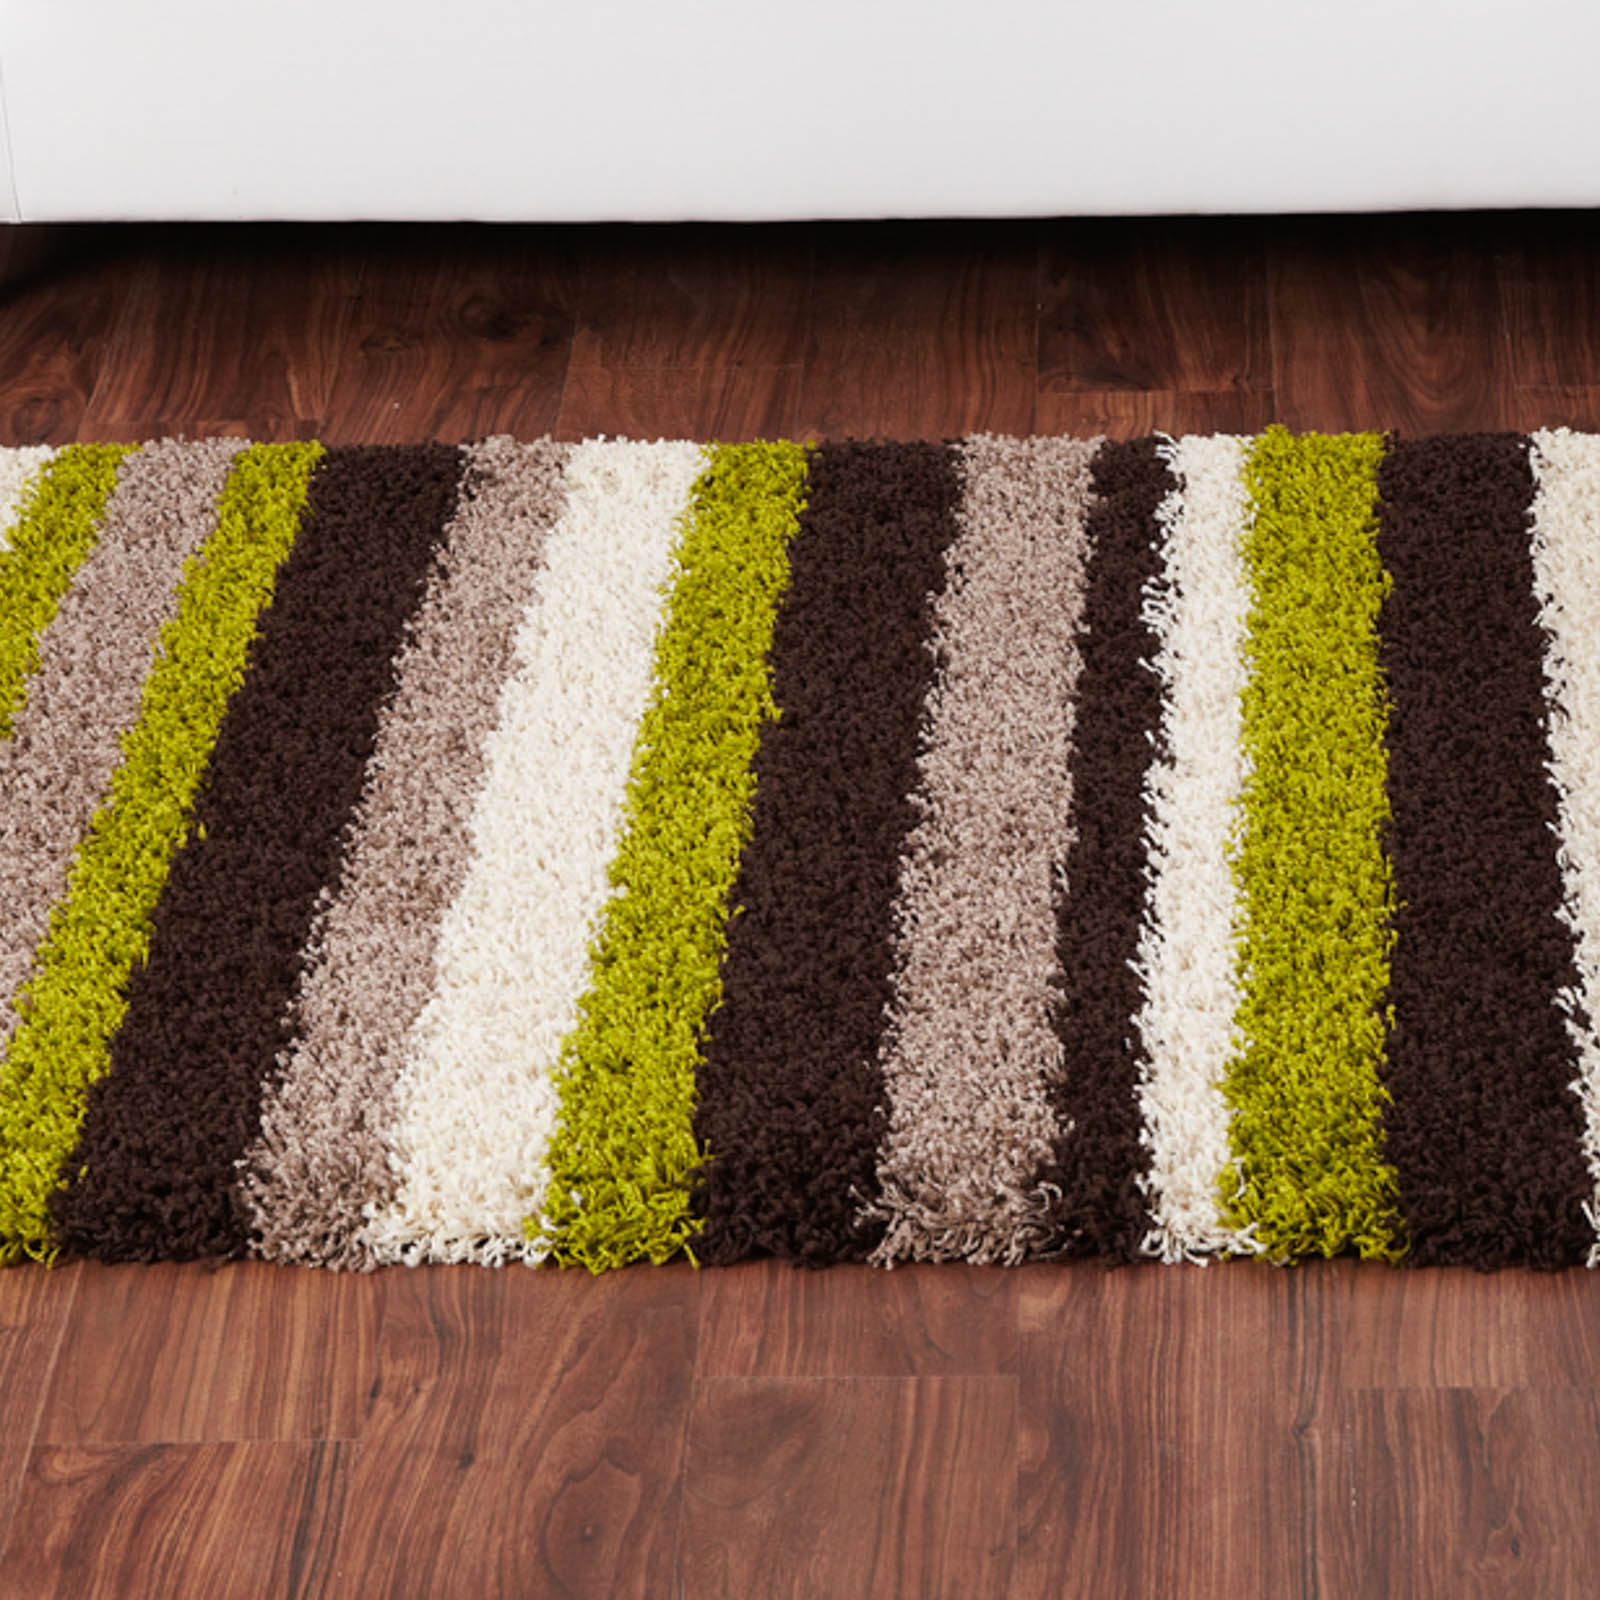 Sienna Stripe Shaggy Rugs in Chocolate and Green